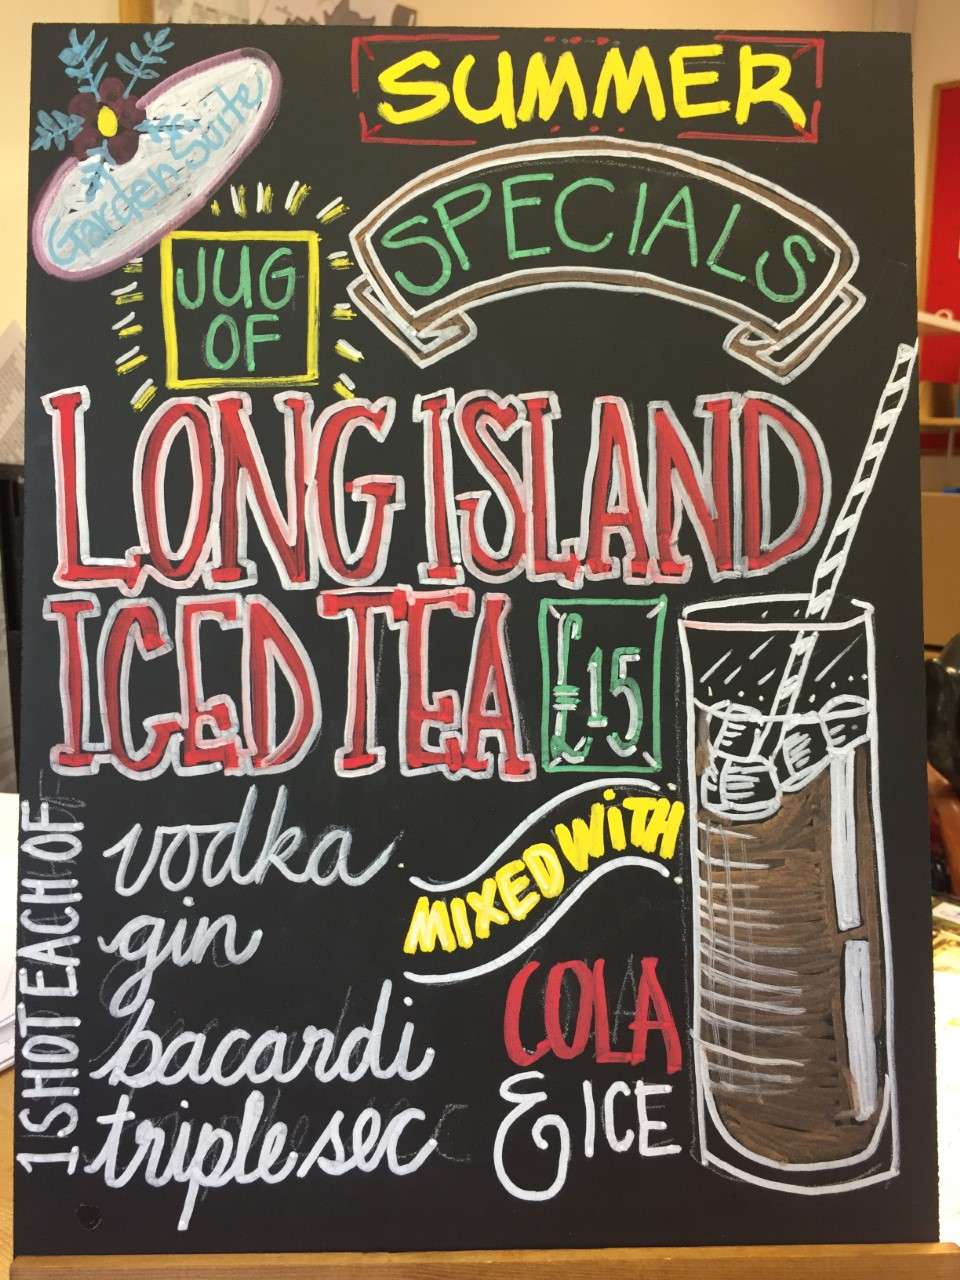 http://A%20colourful%20chalkboard%20with%20a%20drawing%20of%20a%20large%20jug%20with%20ice%20and%20a%20straw.%20It%20is%20advertising%20a%20pitcher%20of%20Long%20Island%20Iced%20Tea%20for%20£15.